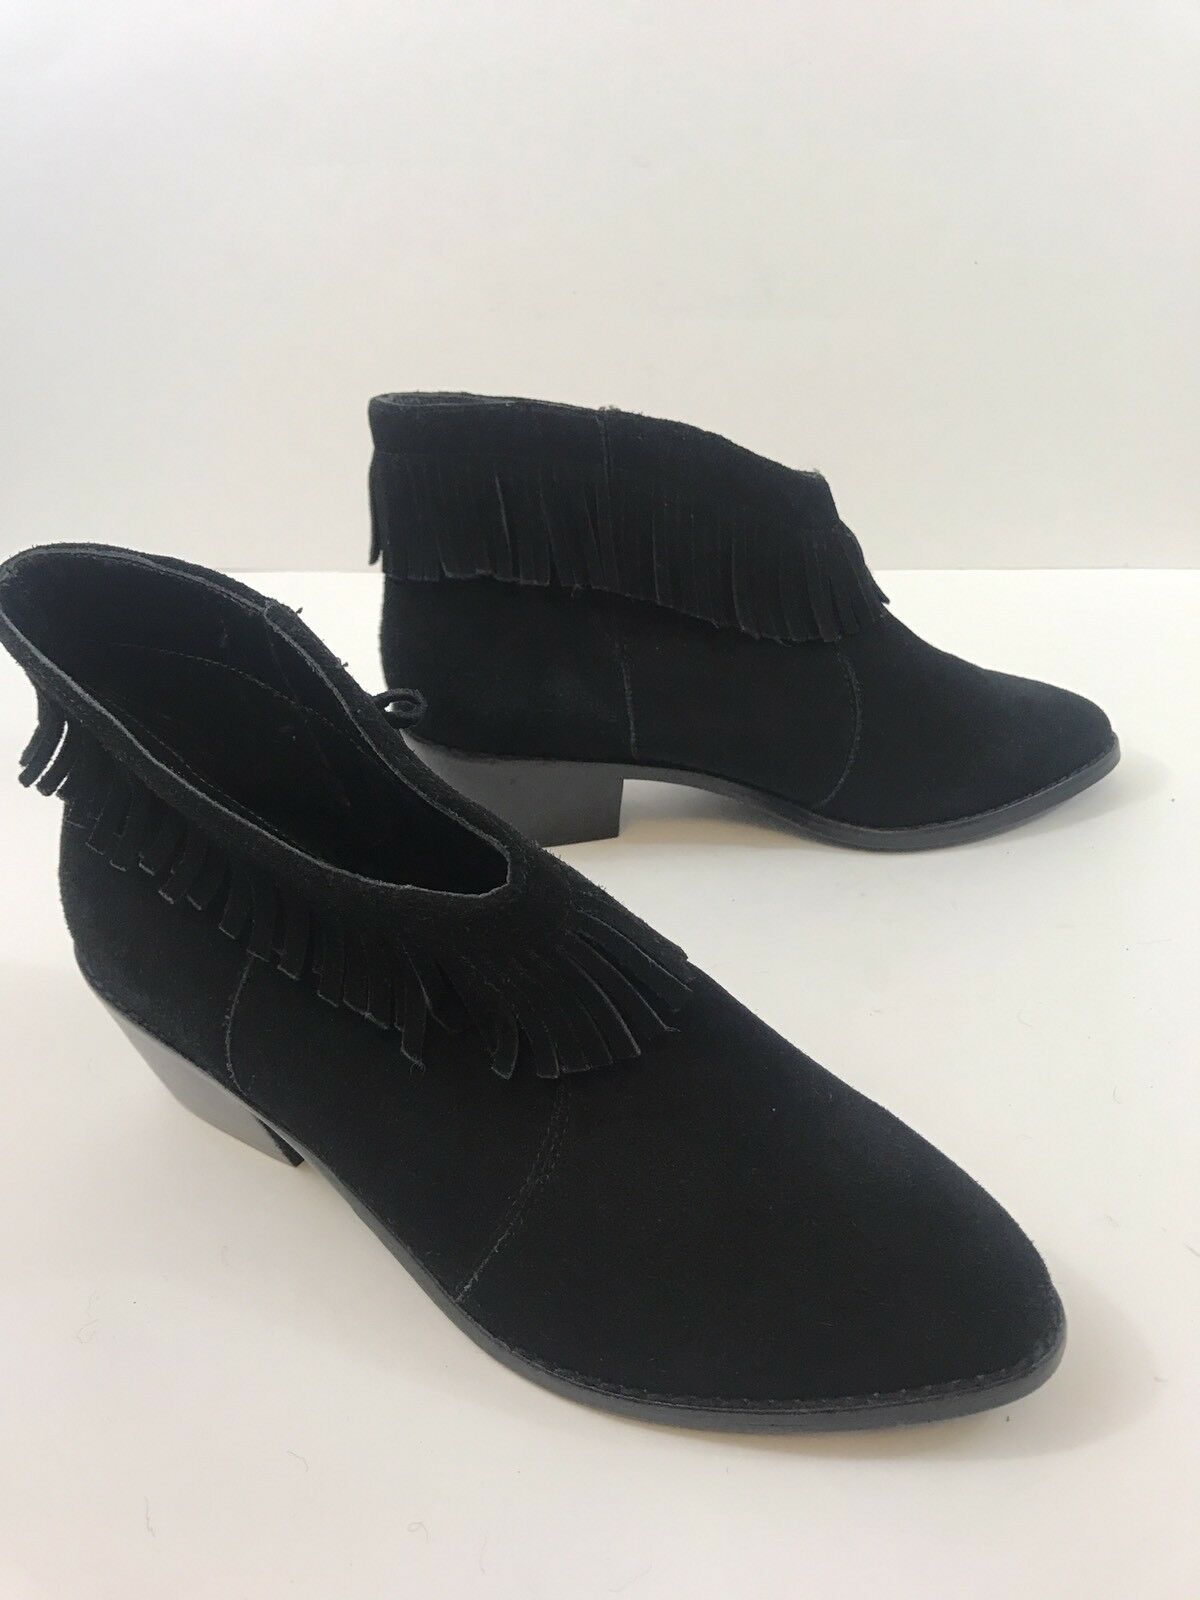 WOMENS NWOT Joie BLACK Suede Fringe Detail Ankle Boots Size Size Size 37.5  1 51eae5